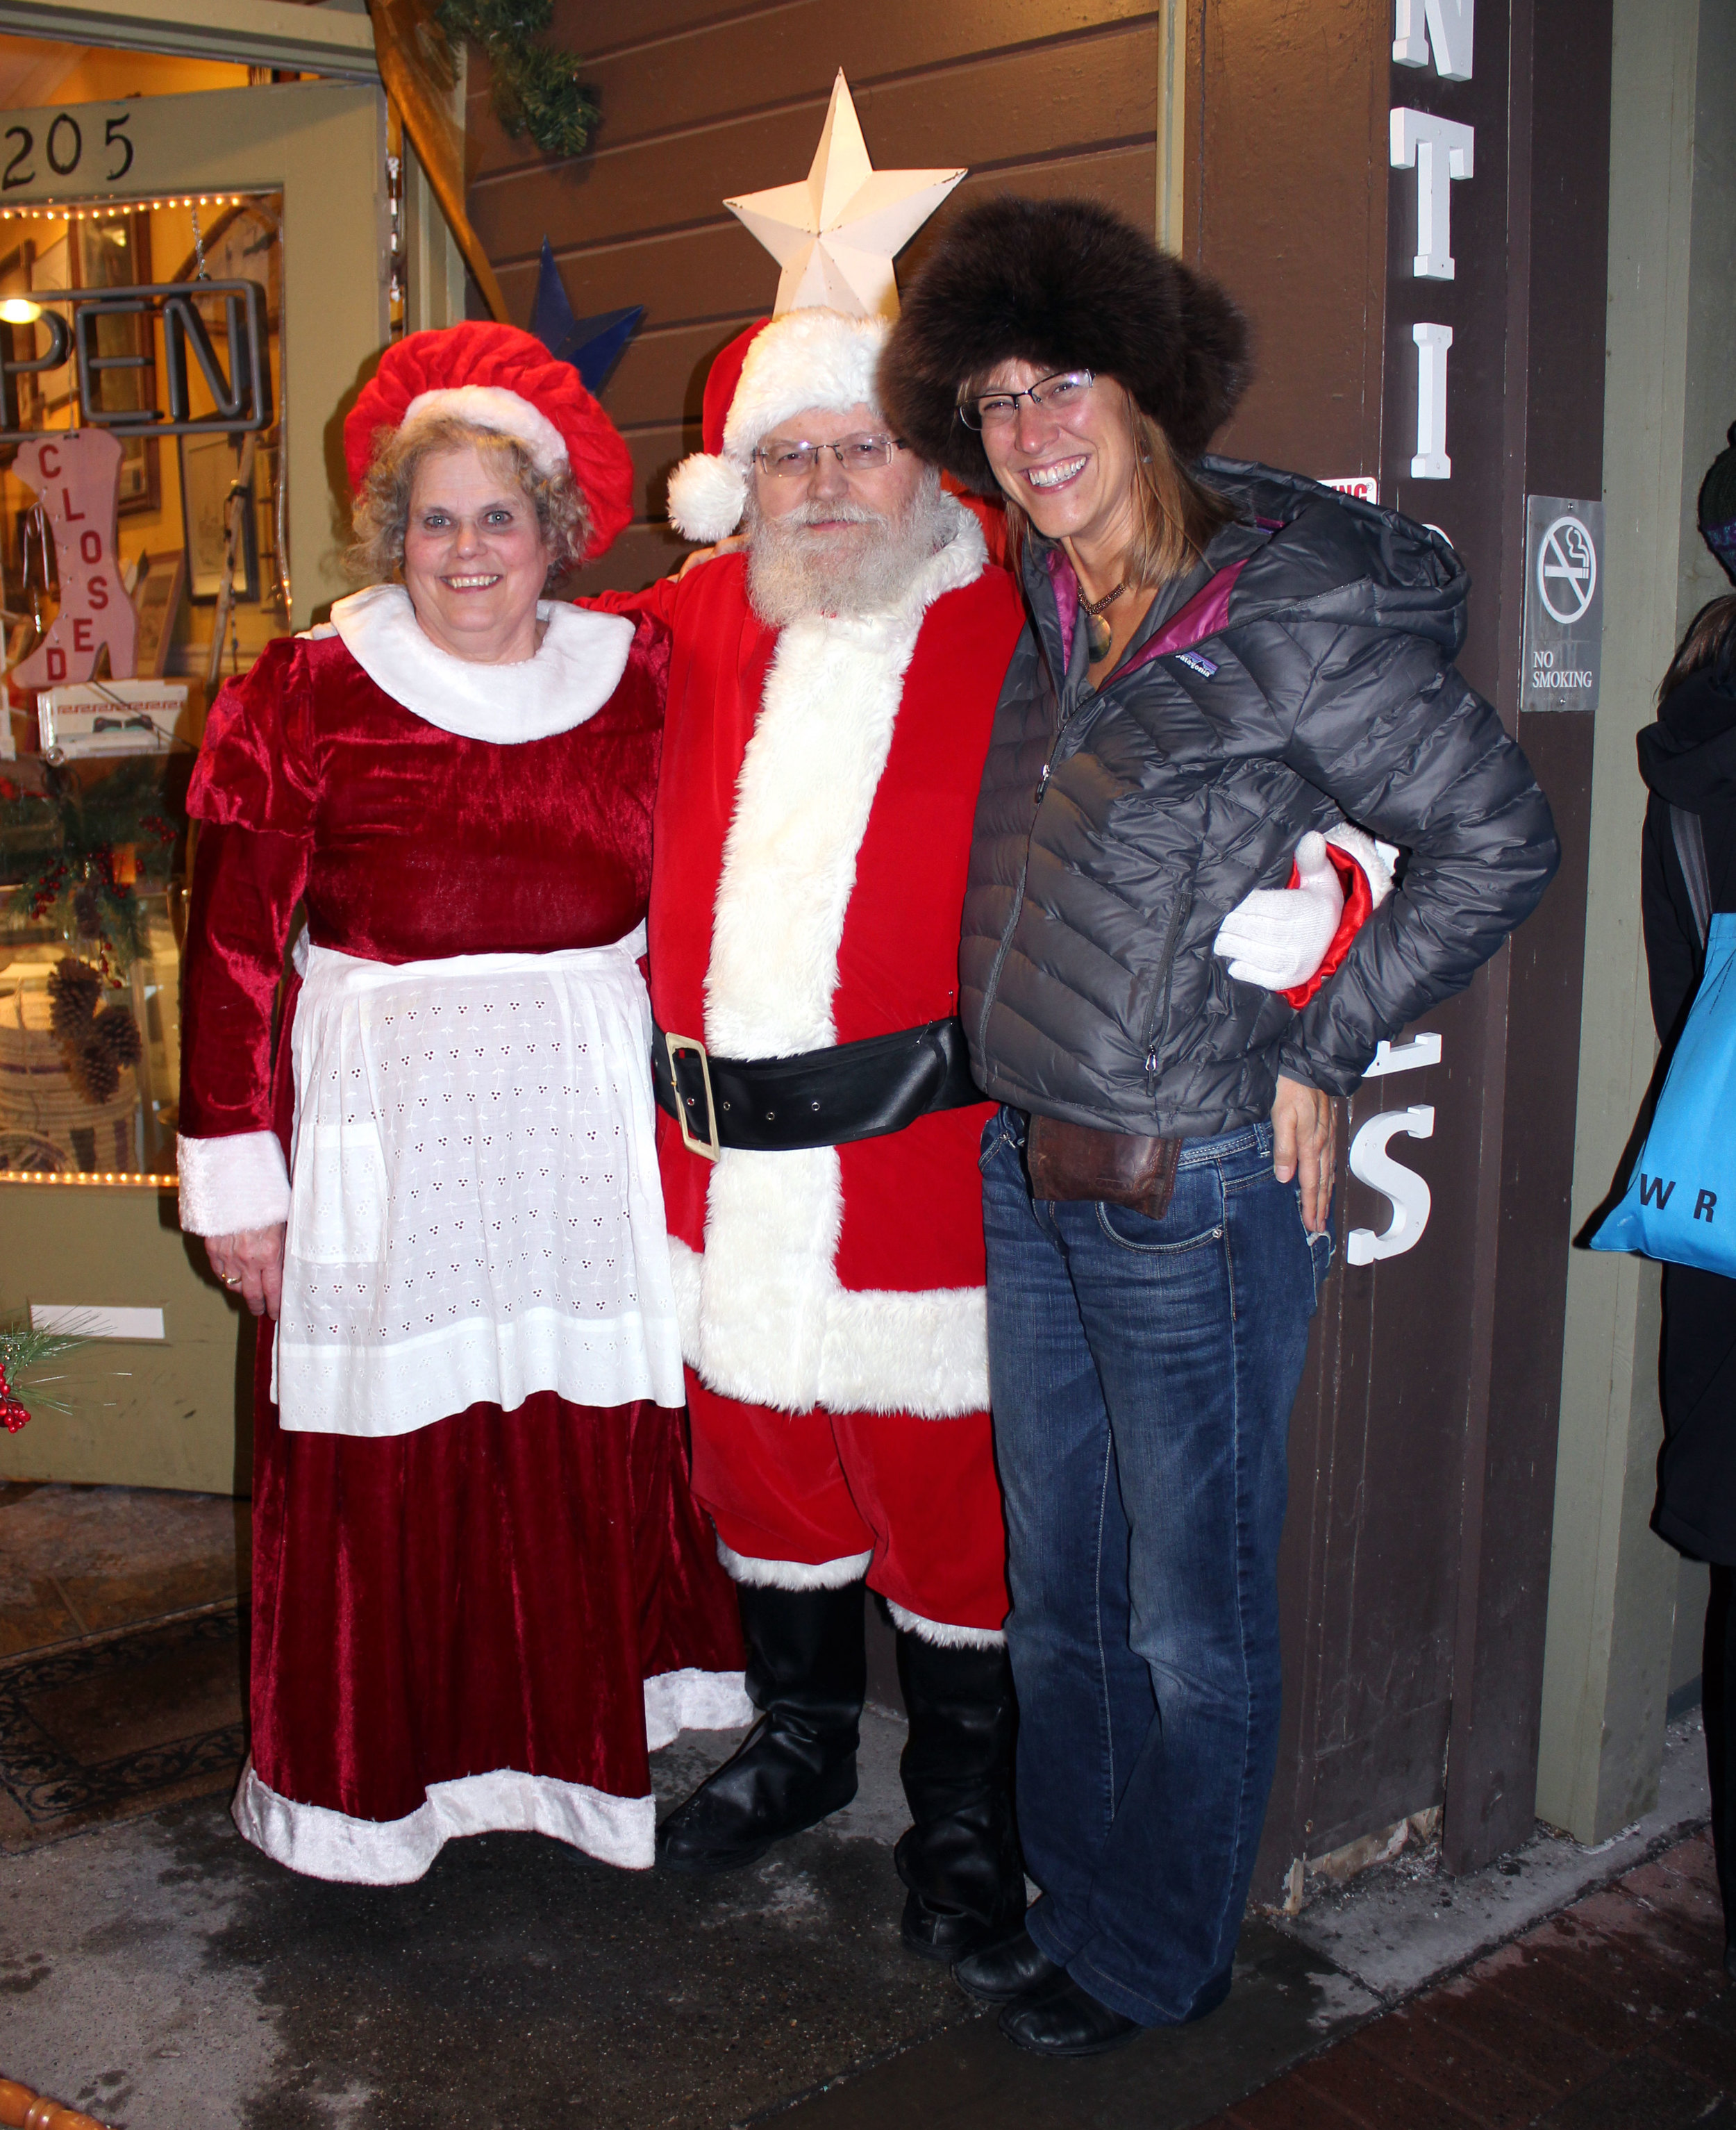 Michelle with Santa, Mrs. Claus, and The Hat.